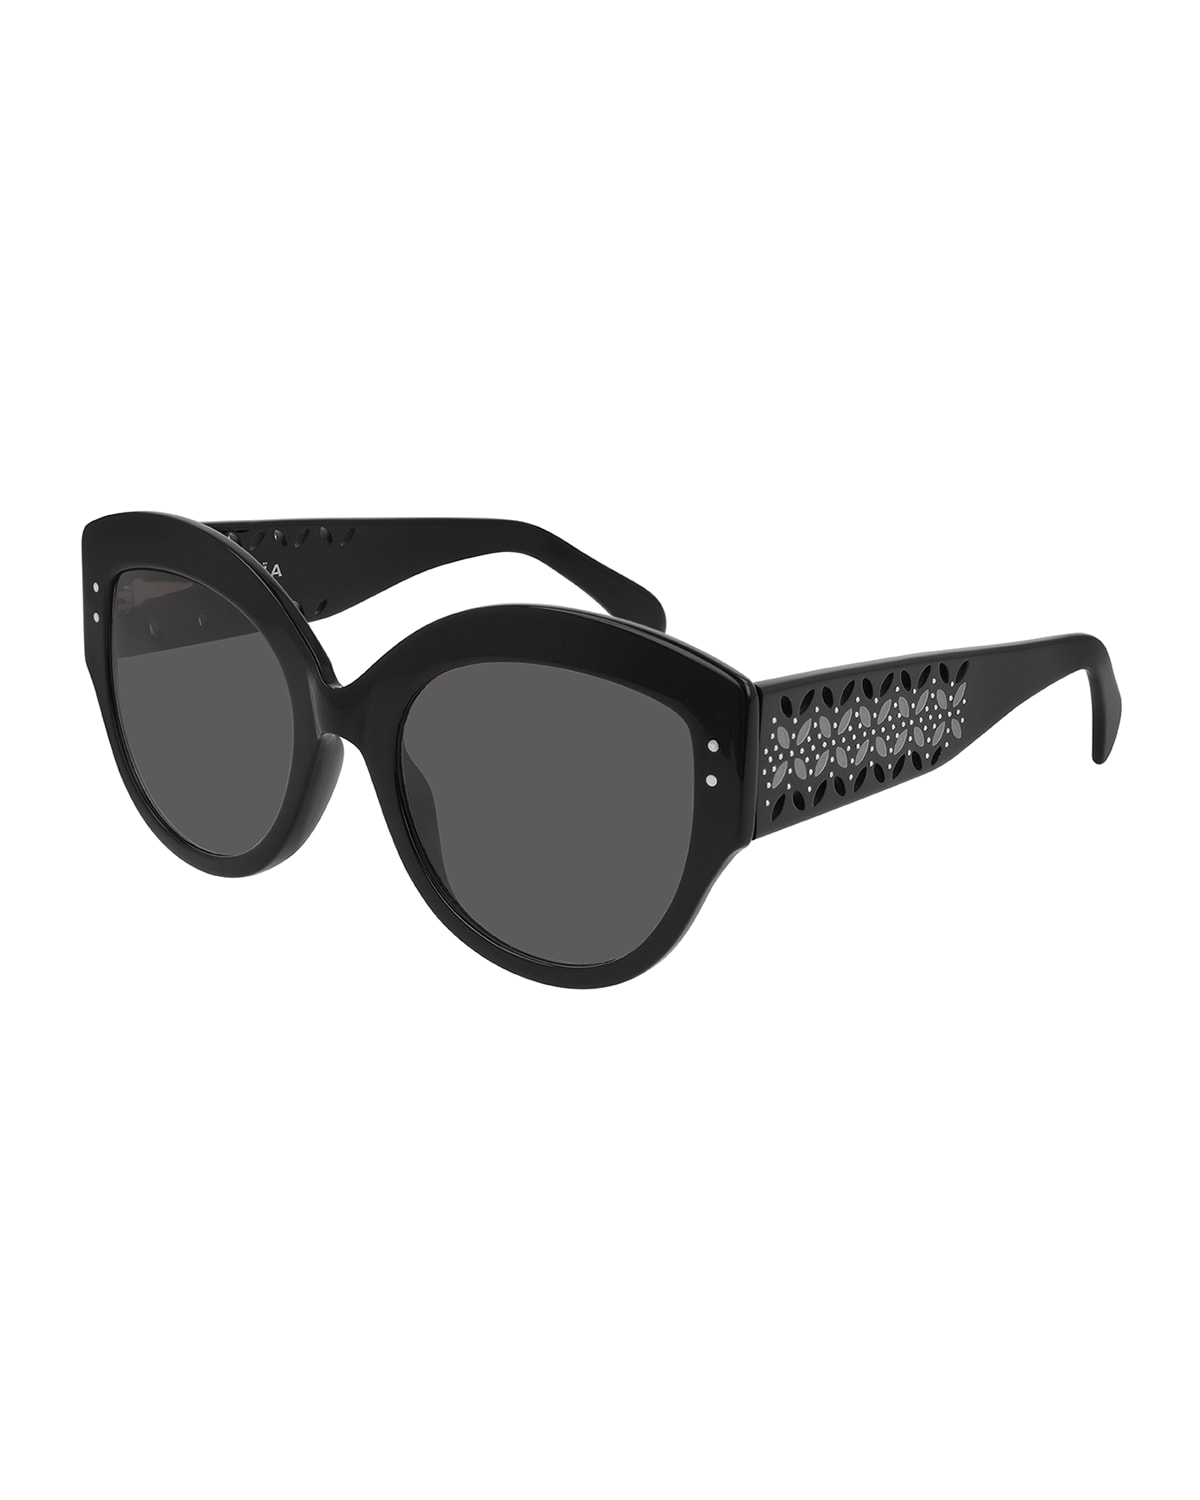 Round Acetate Sunglasses w/ Perforated Arms